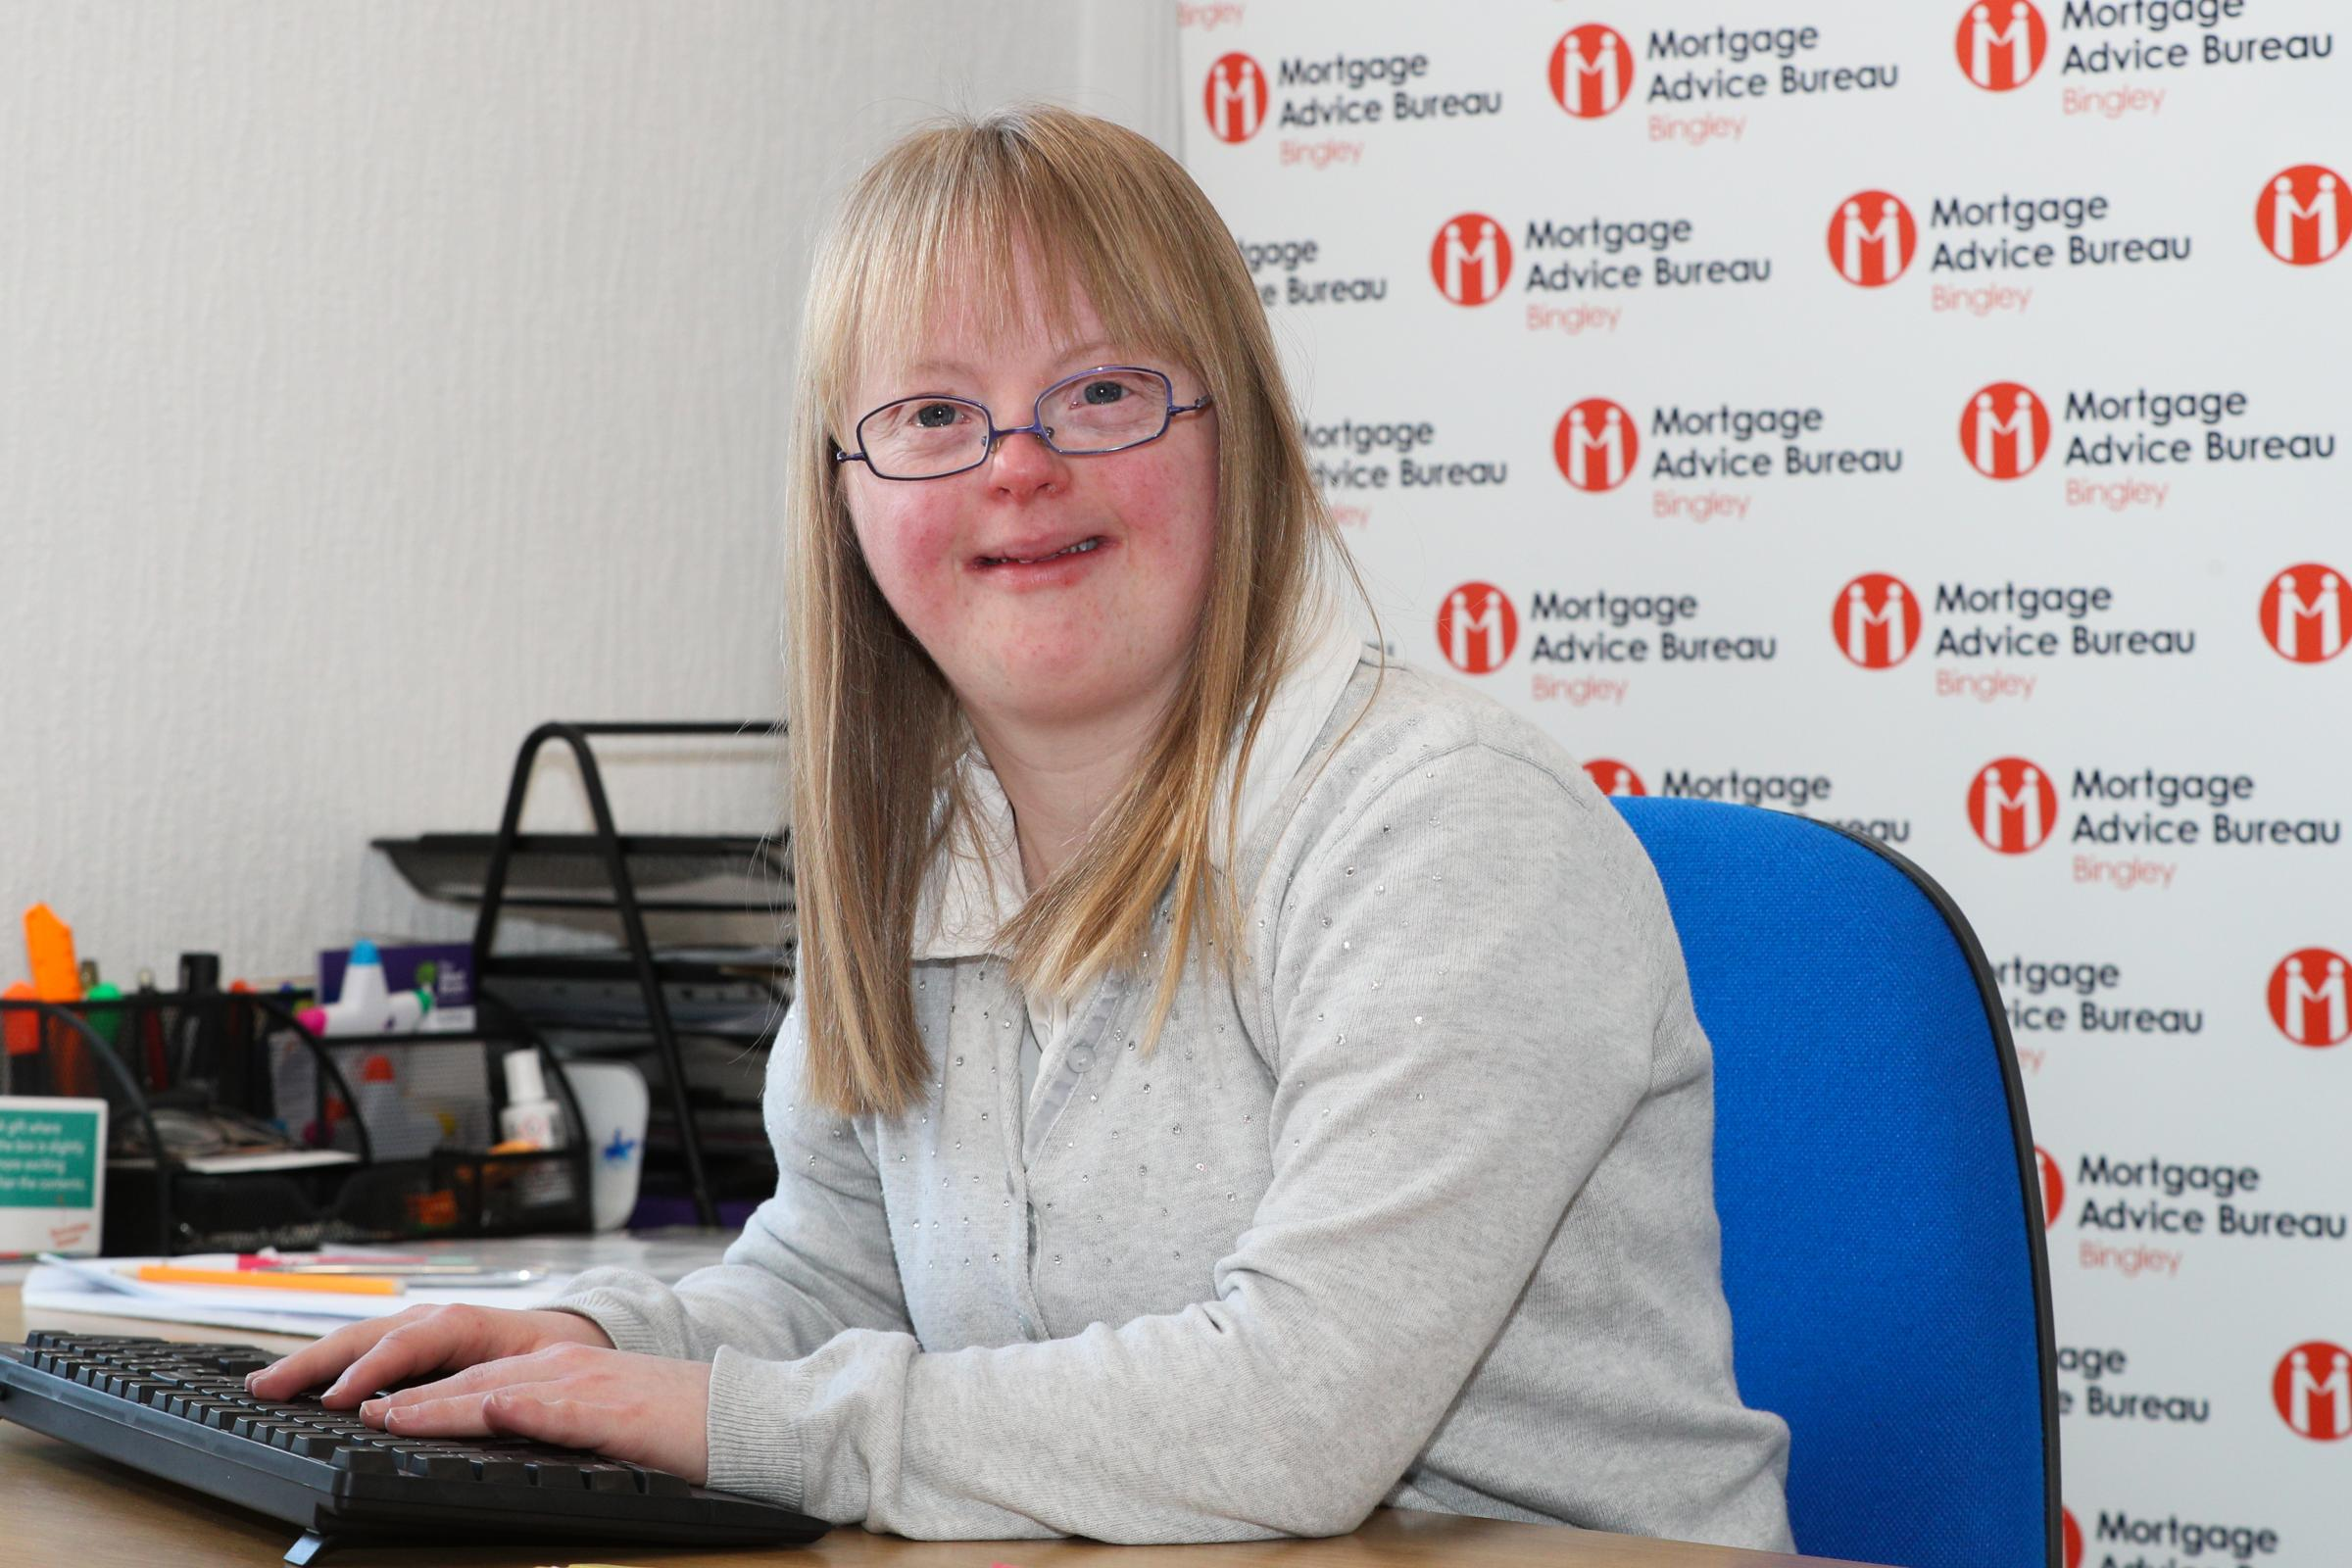 Rebecca Spalding at her desk during her work placement with Mortgage Advice Bureau in Bingley